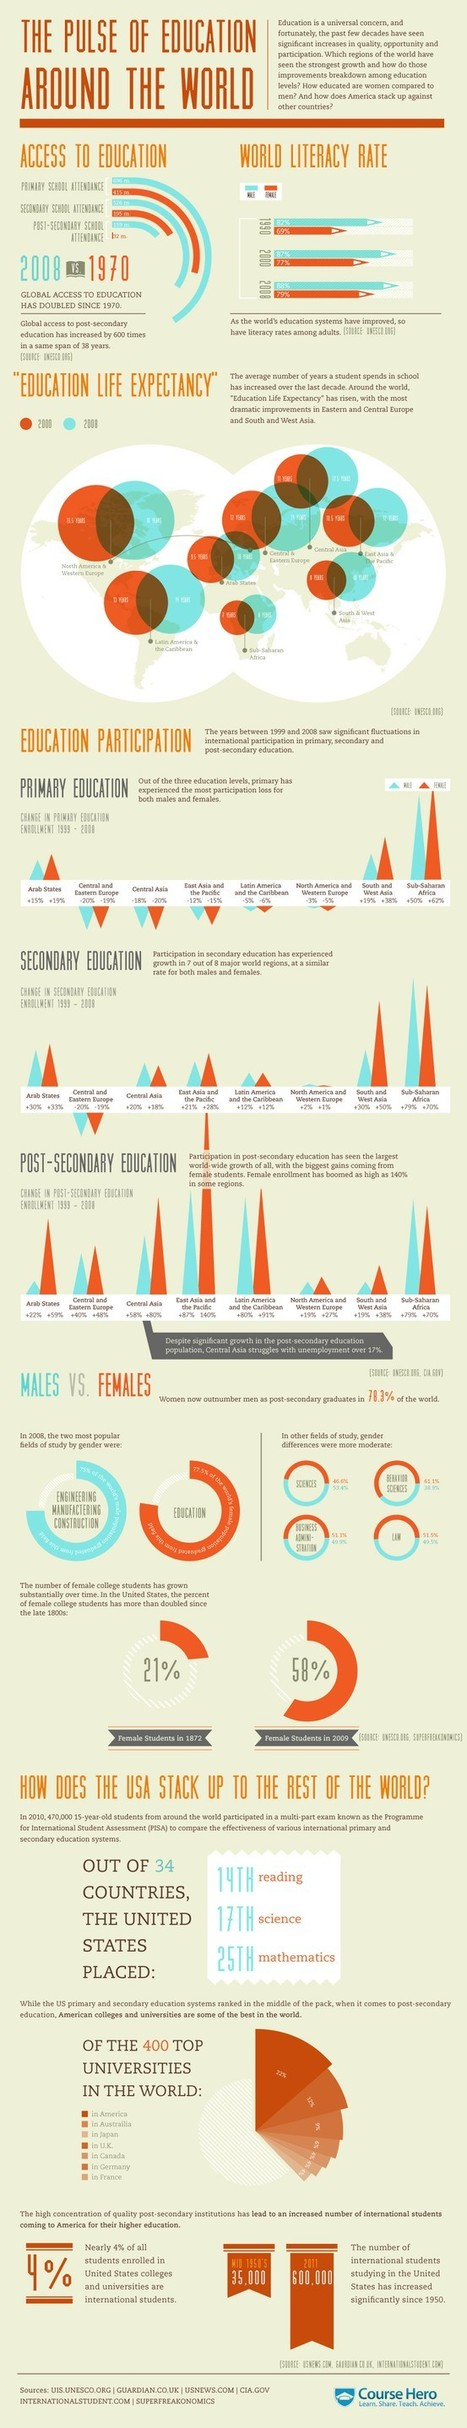 """Staff Picks @PInterest """"Infographic: The Pulse Of Education Around the World"""" 